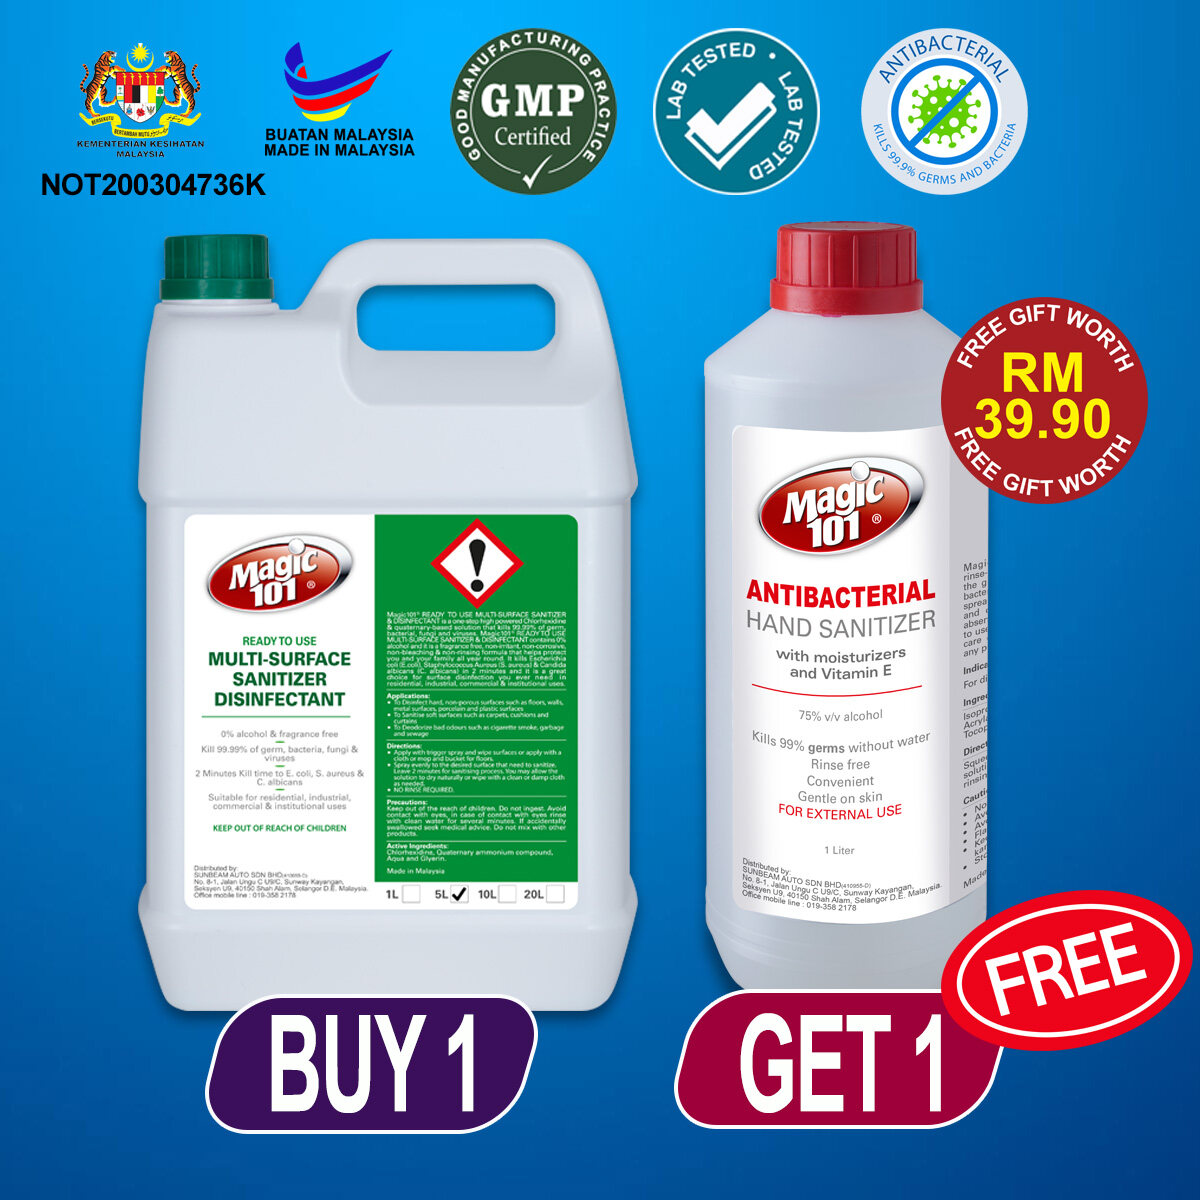 Magic101 Hard Surface Sanitizer Disinfectant Cleaner (READY TO USE) 5L FREE Magic101 Hand sanitizer 1L